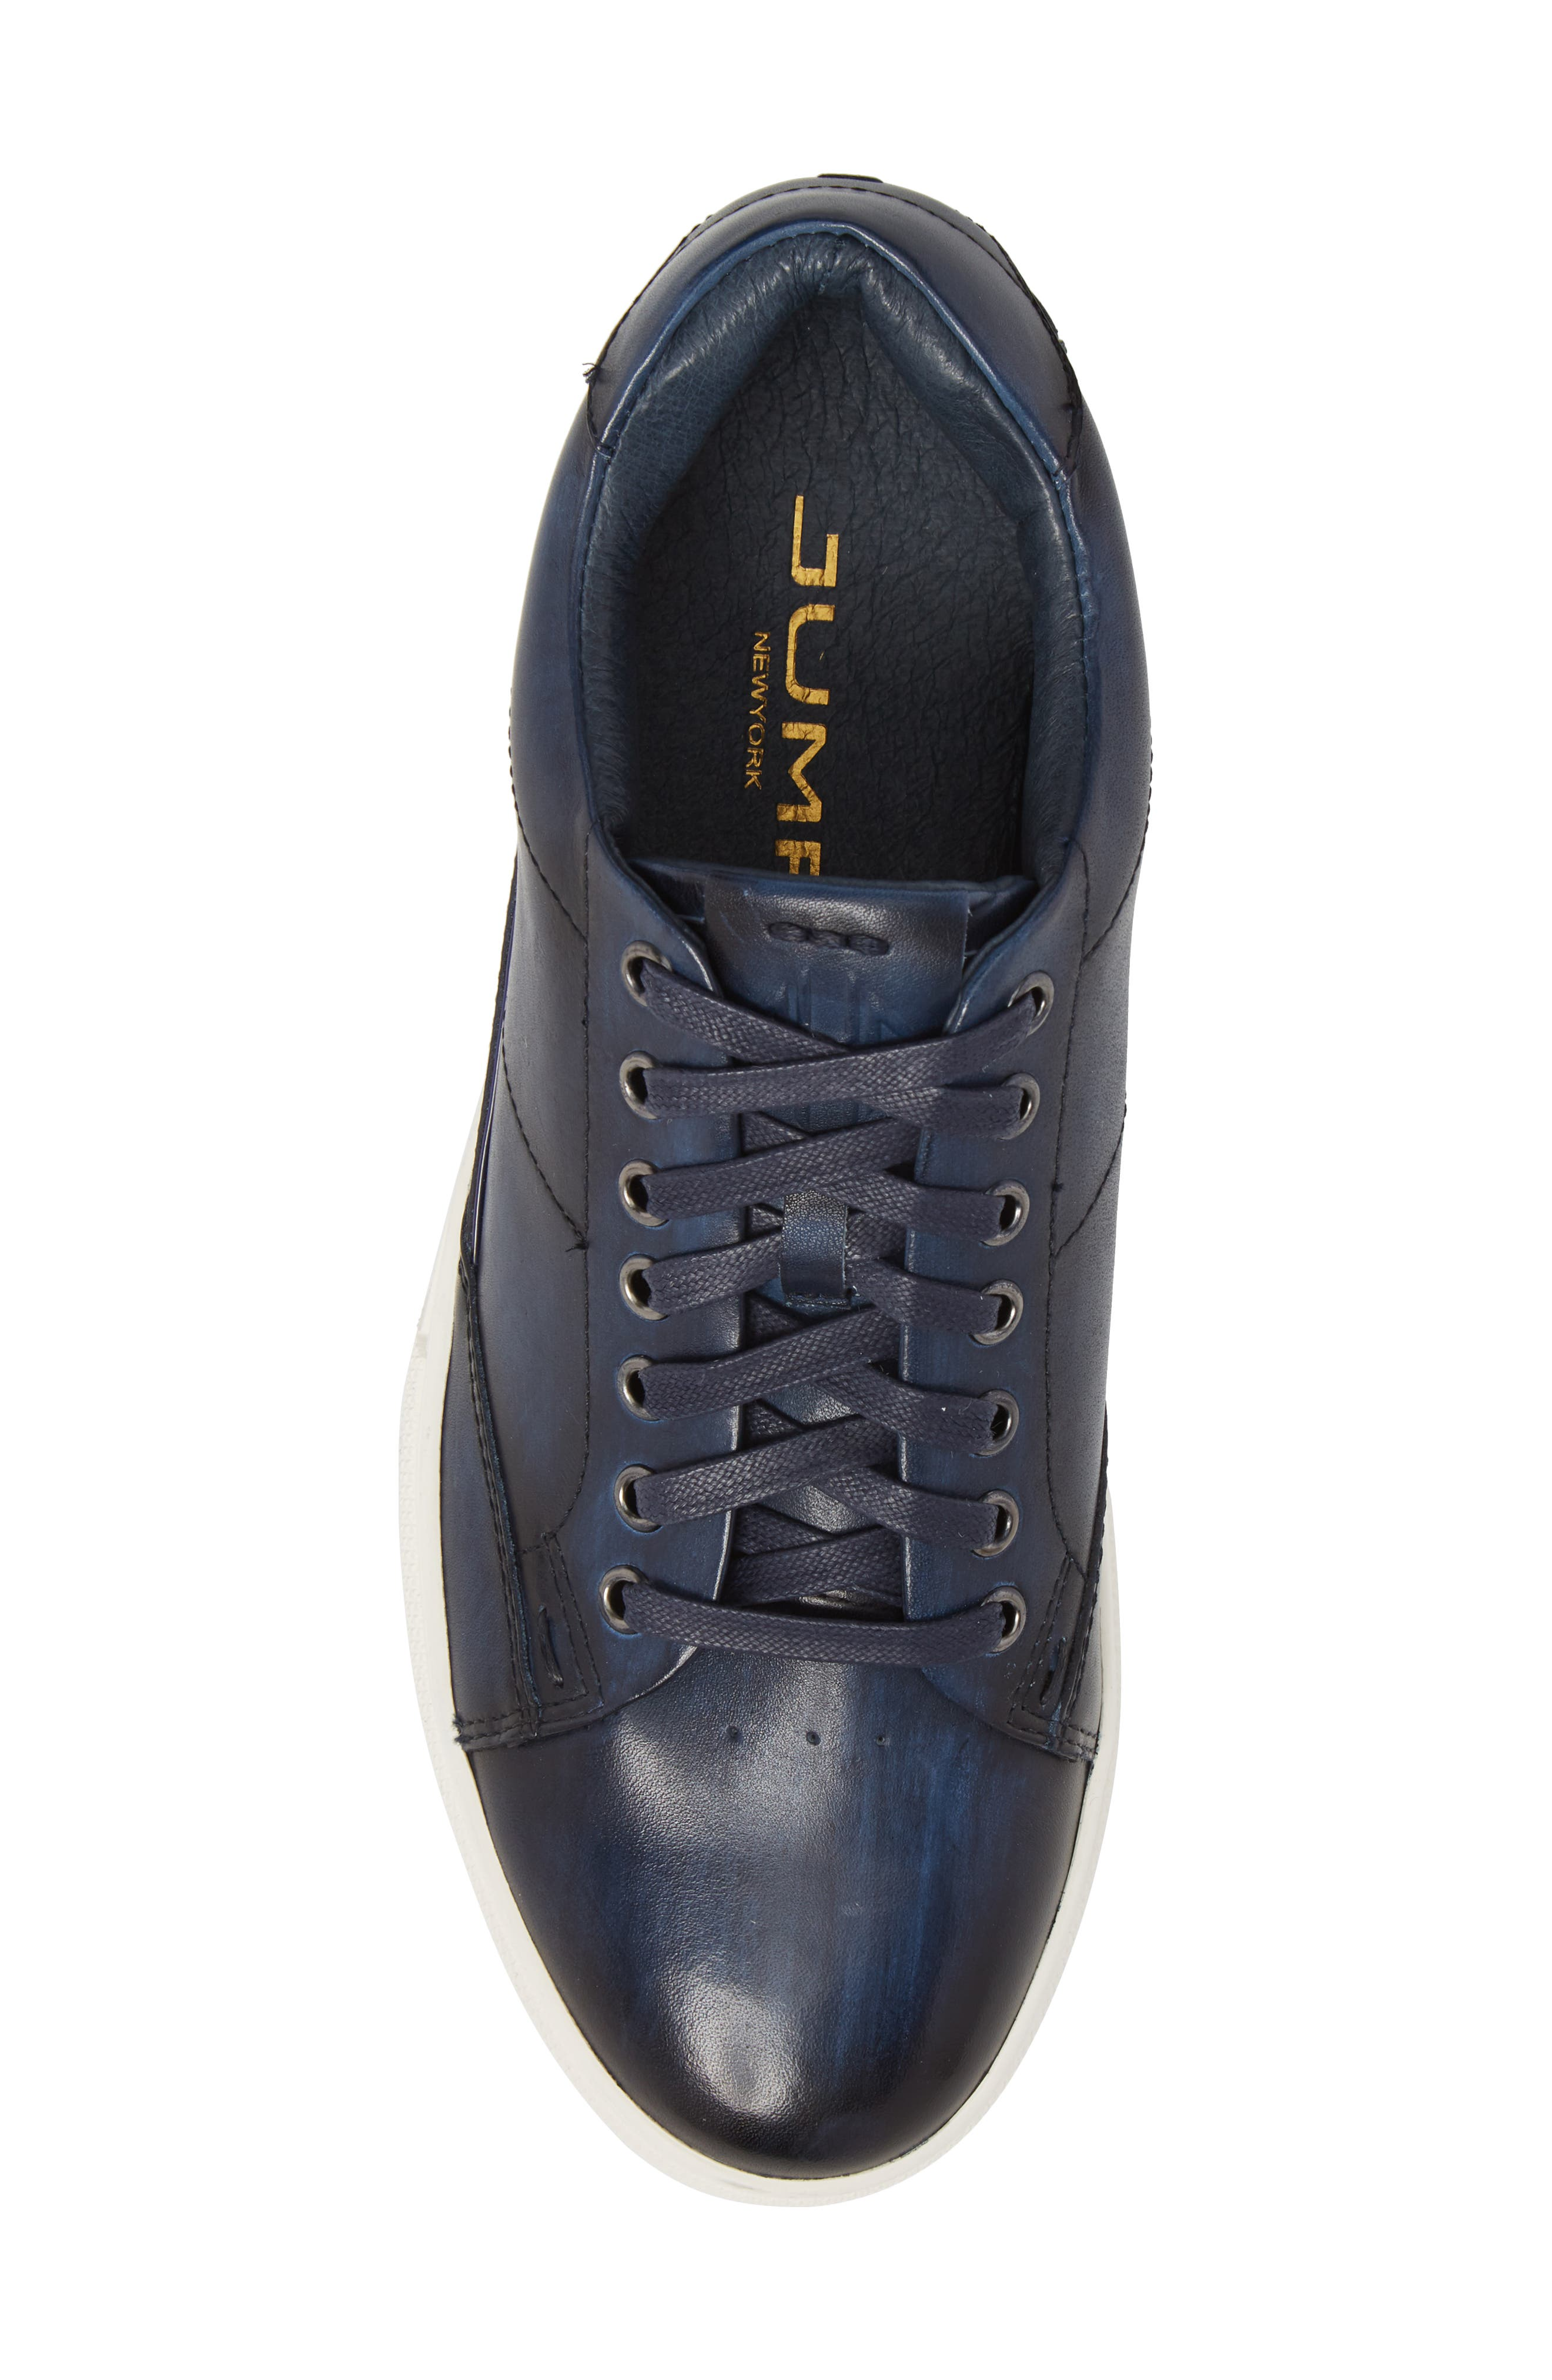 Sweeney Low Top Sneaker,                             Alternate thumbnail 5, color,                             NAVY LEATHER